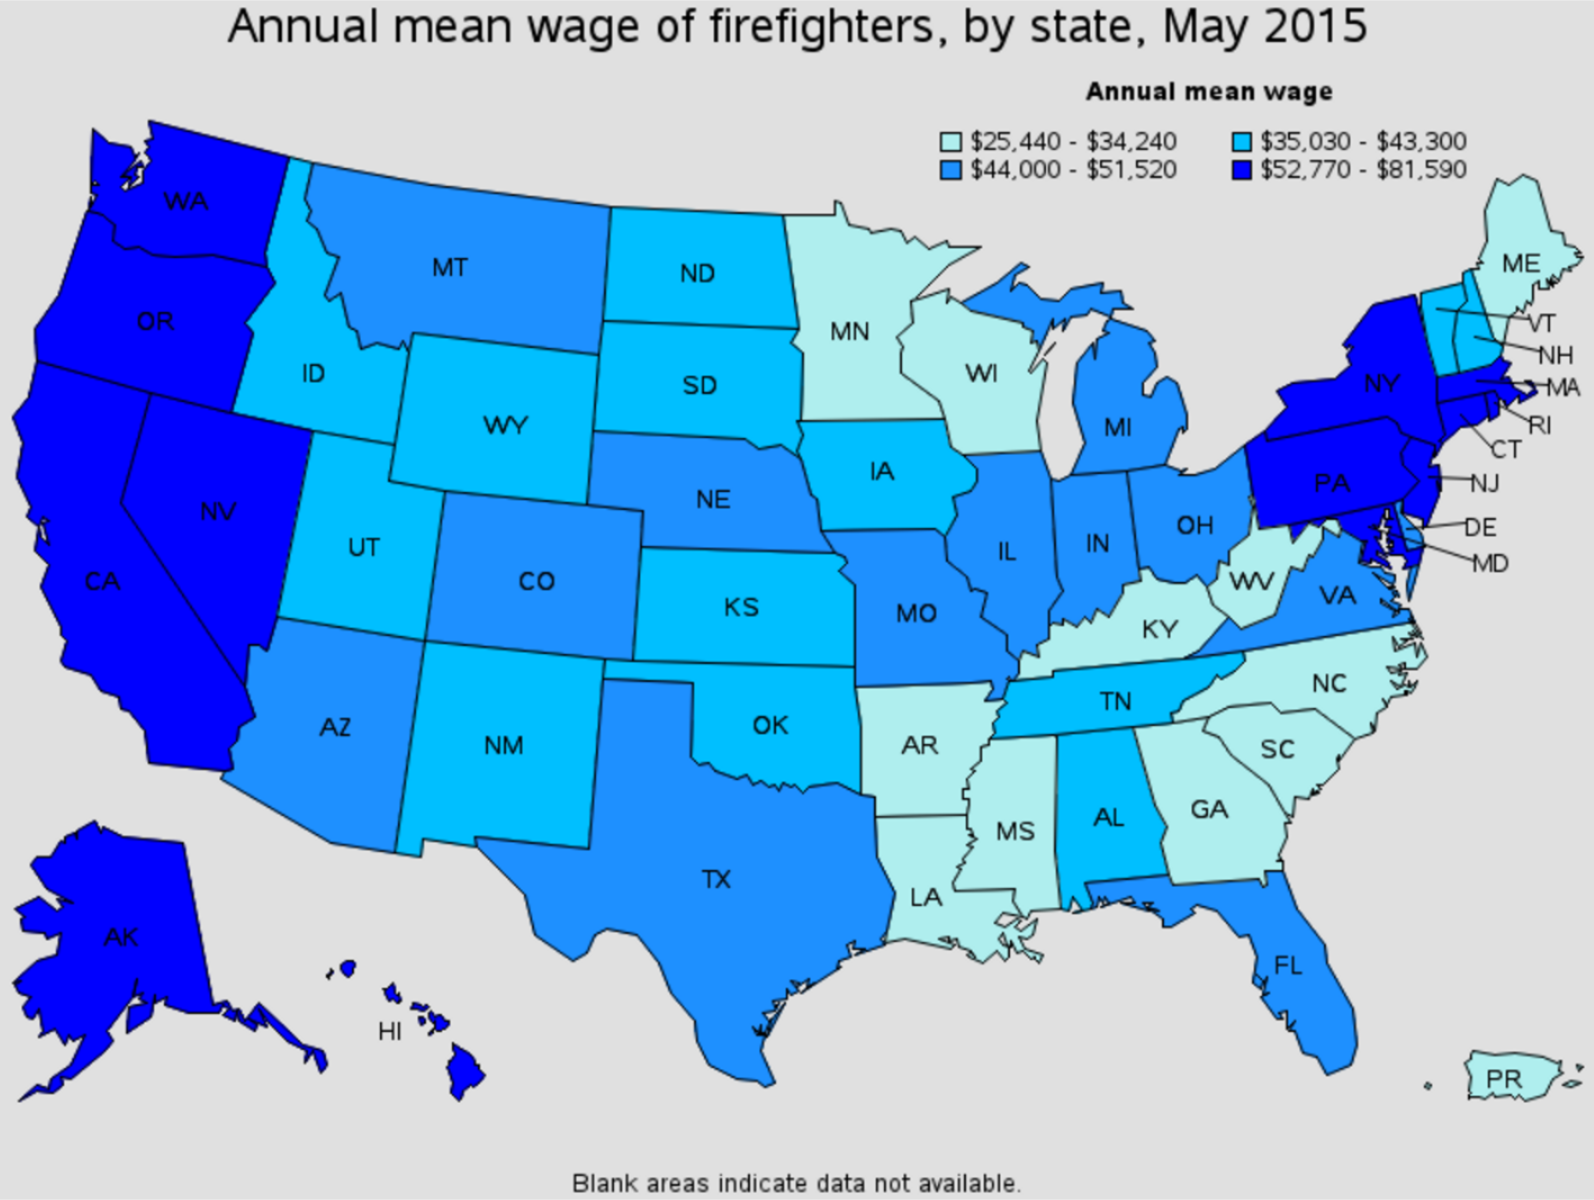 firefighter average salary by state Santa Rosa California